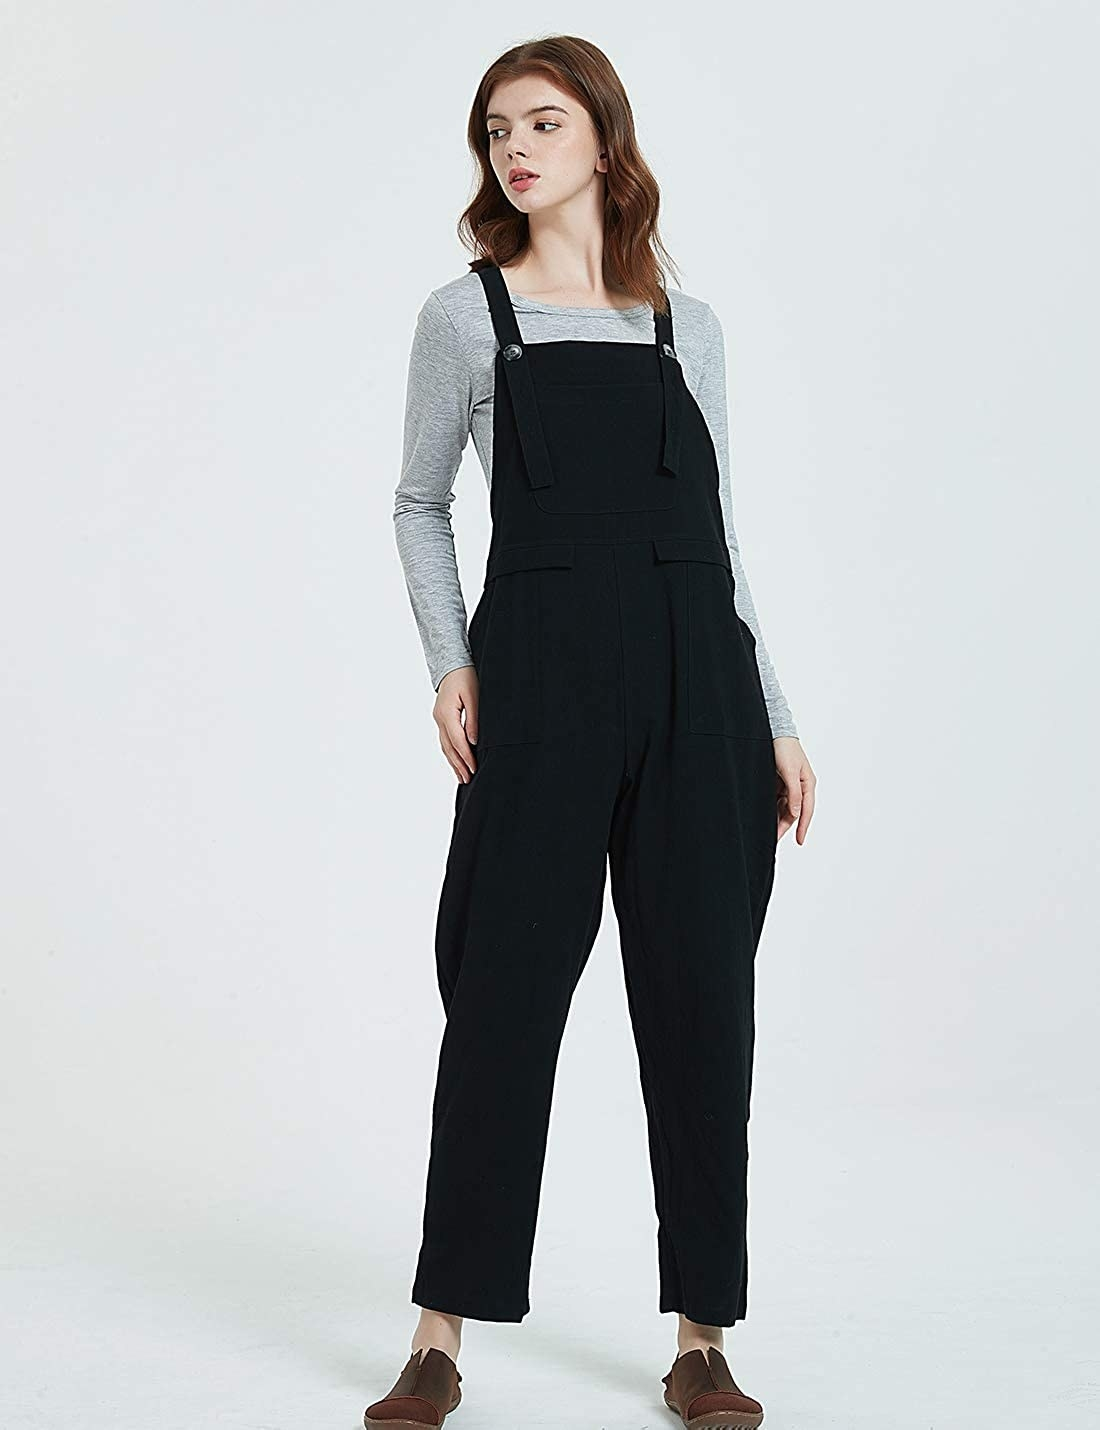 A person wearing the button-up overalls with a shirt underneath. The overalls have front pockets and hit the ankle.